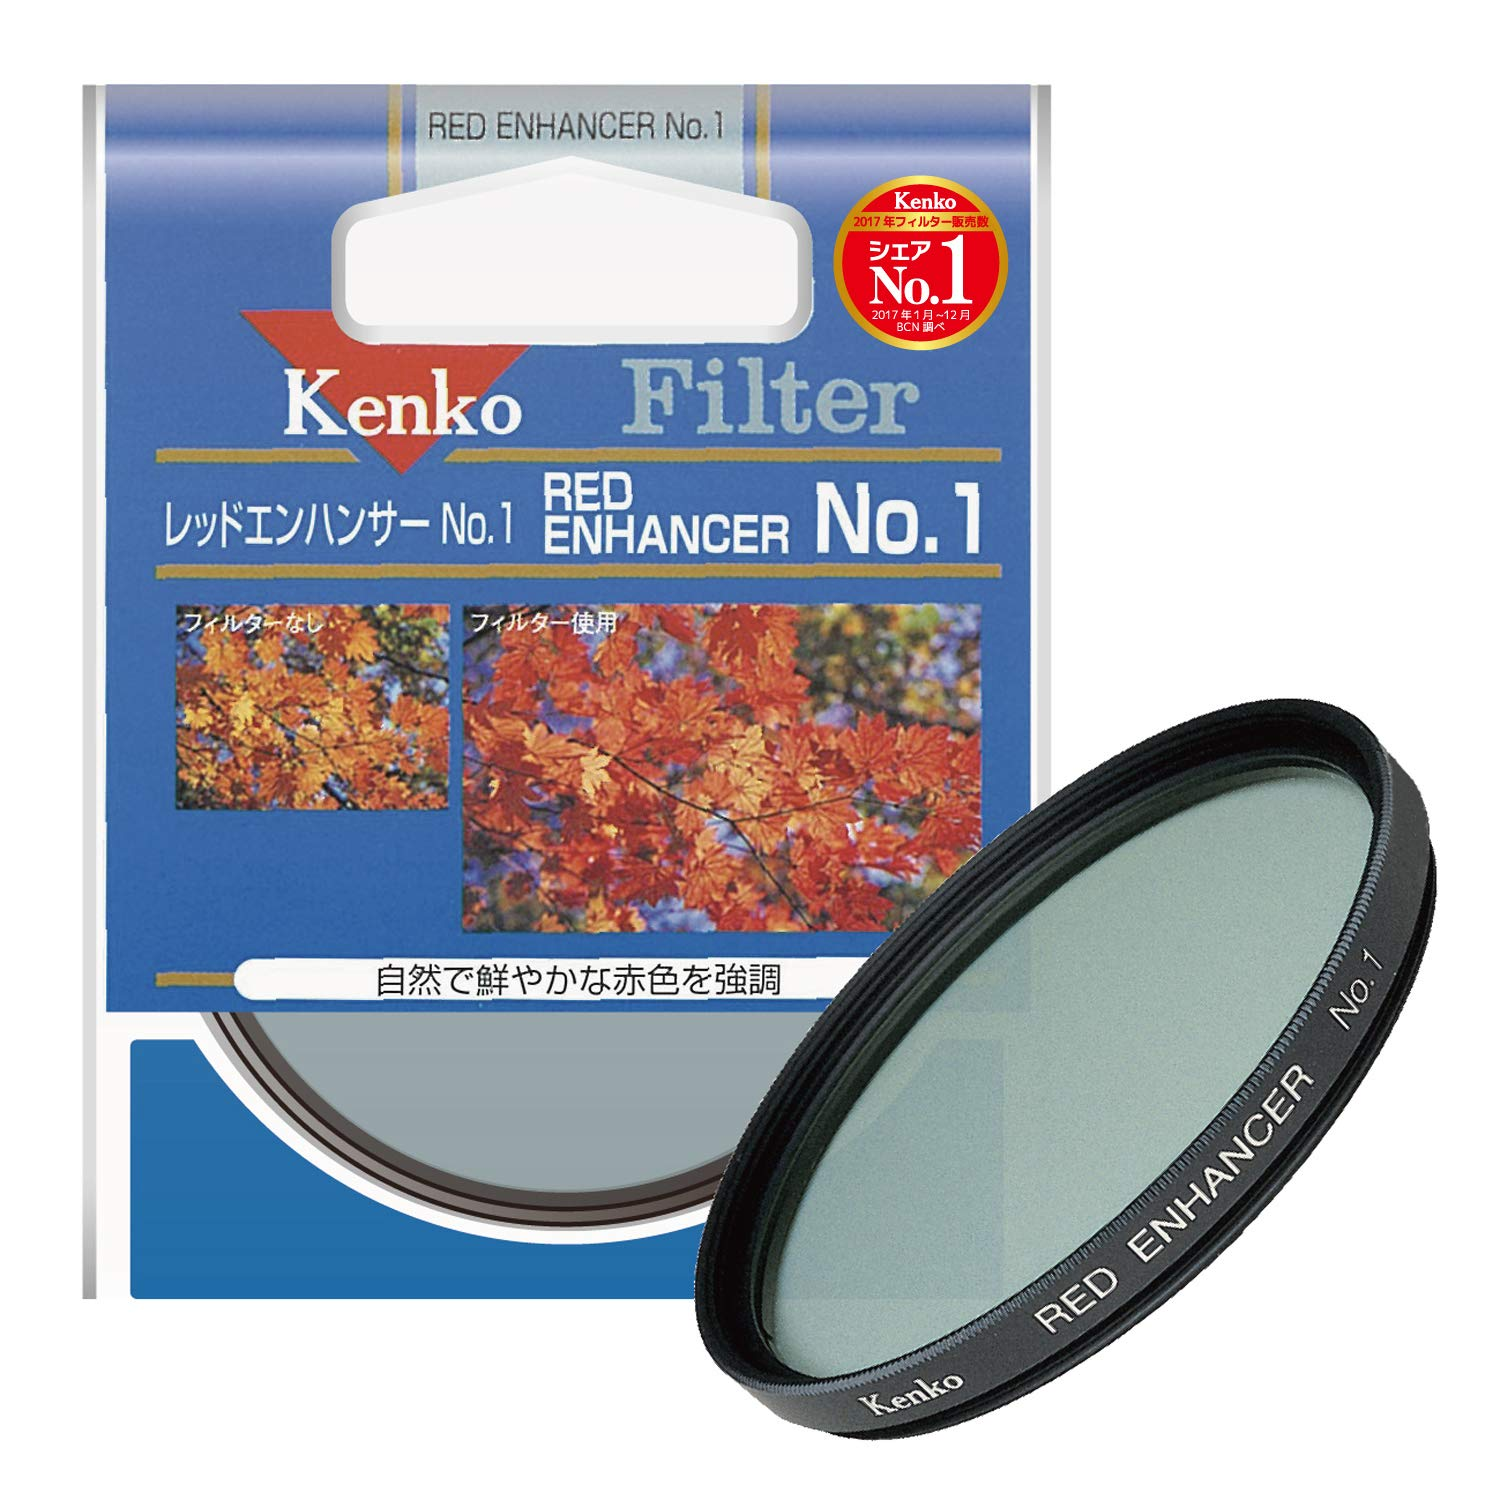 Kenko 77mm Red Enhancer No.1 Camera Lens Filters by Kenko